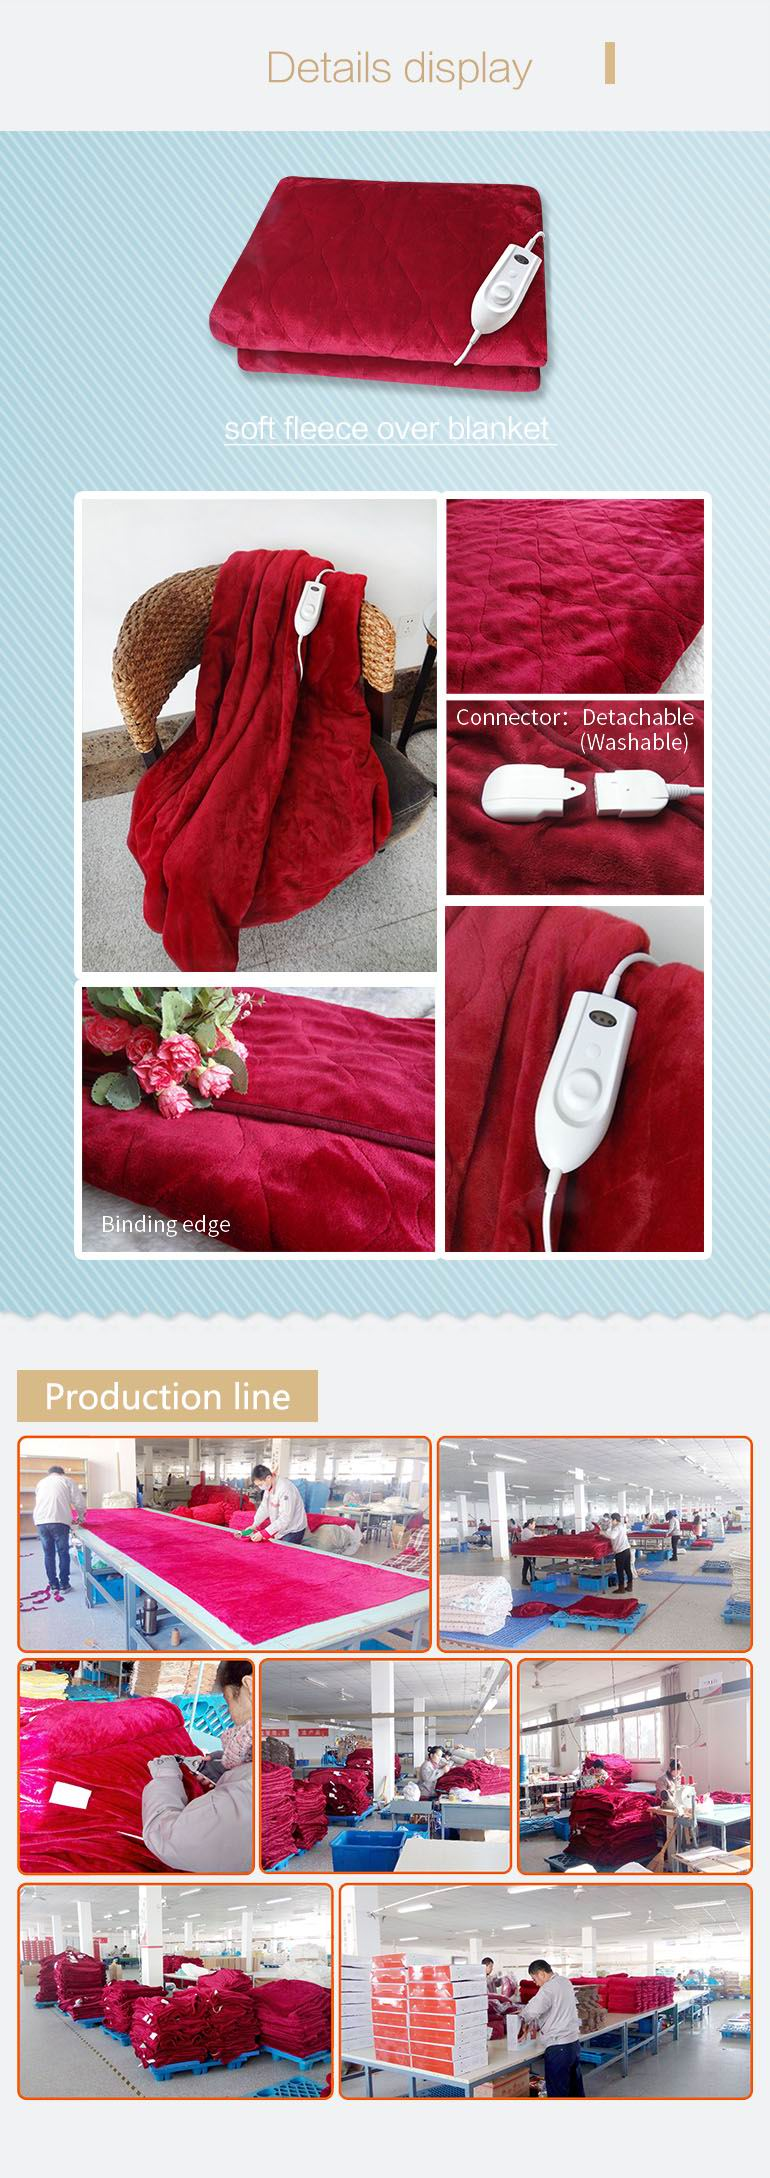 Newest Digital Controller Electric Throw Blanket with Ce Certificate